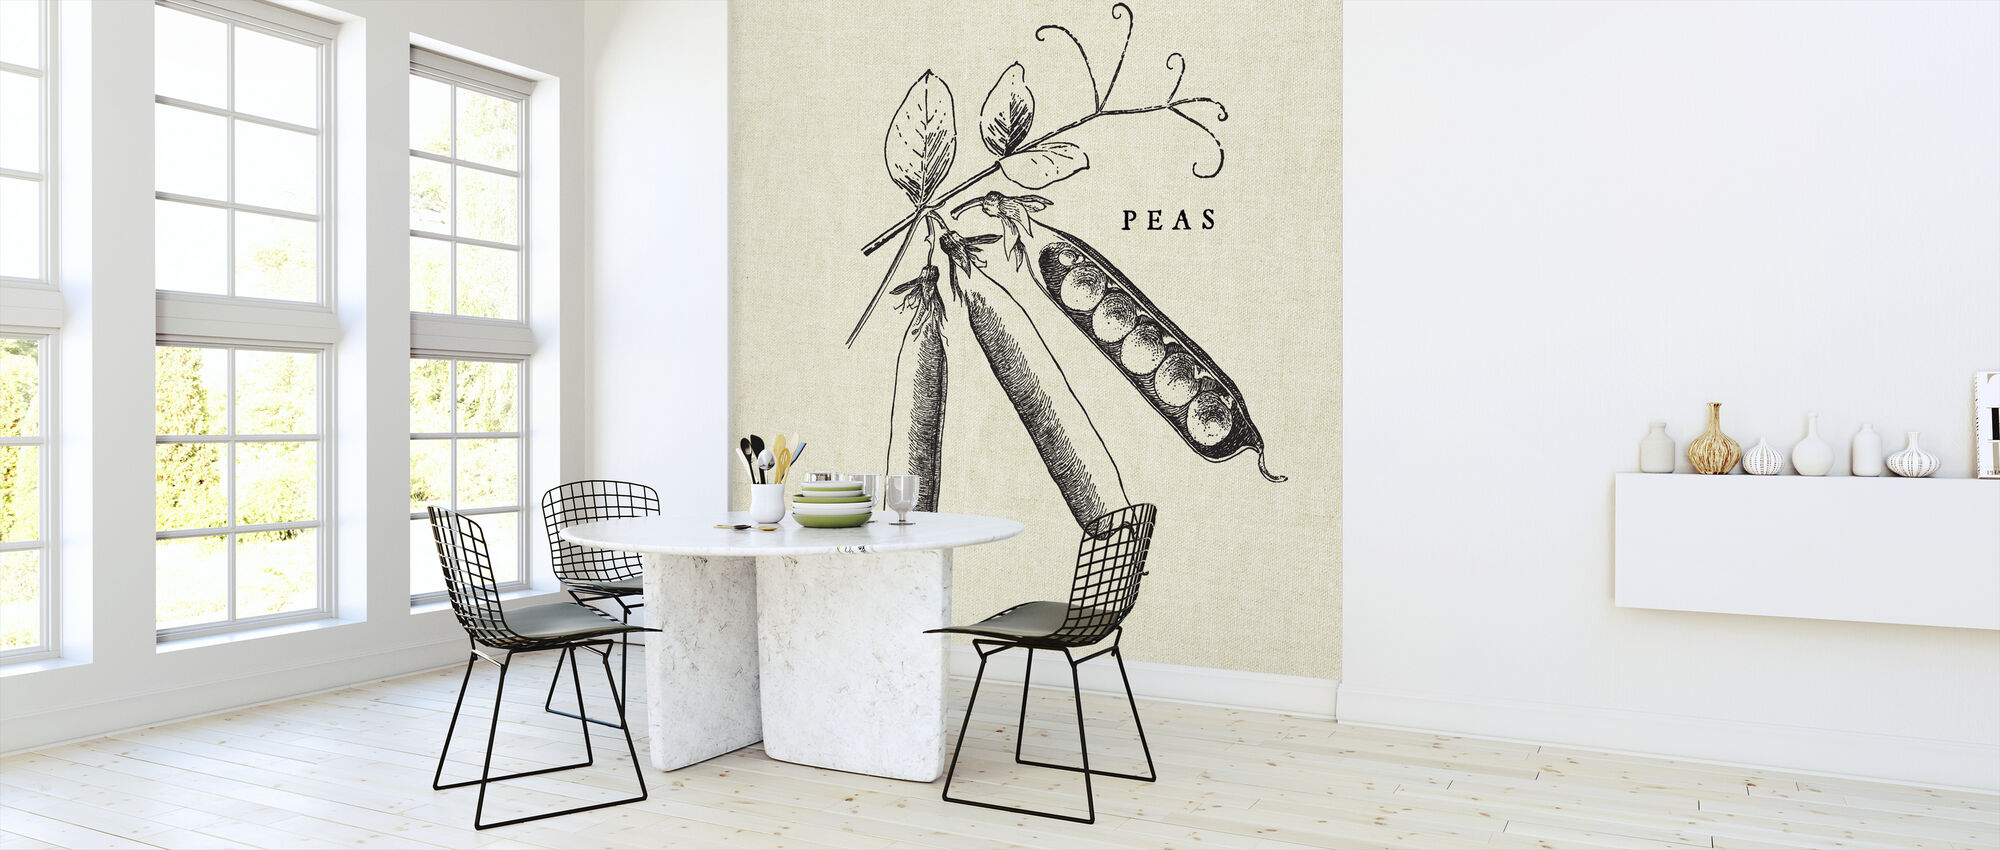 Kitchen Illustration - Peas - Wallpaper - Kitchen